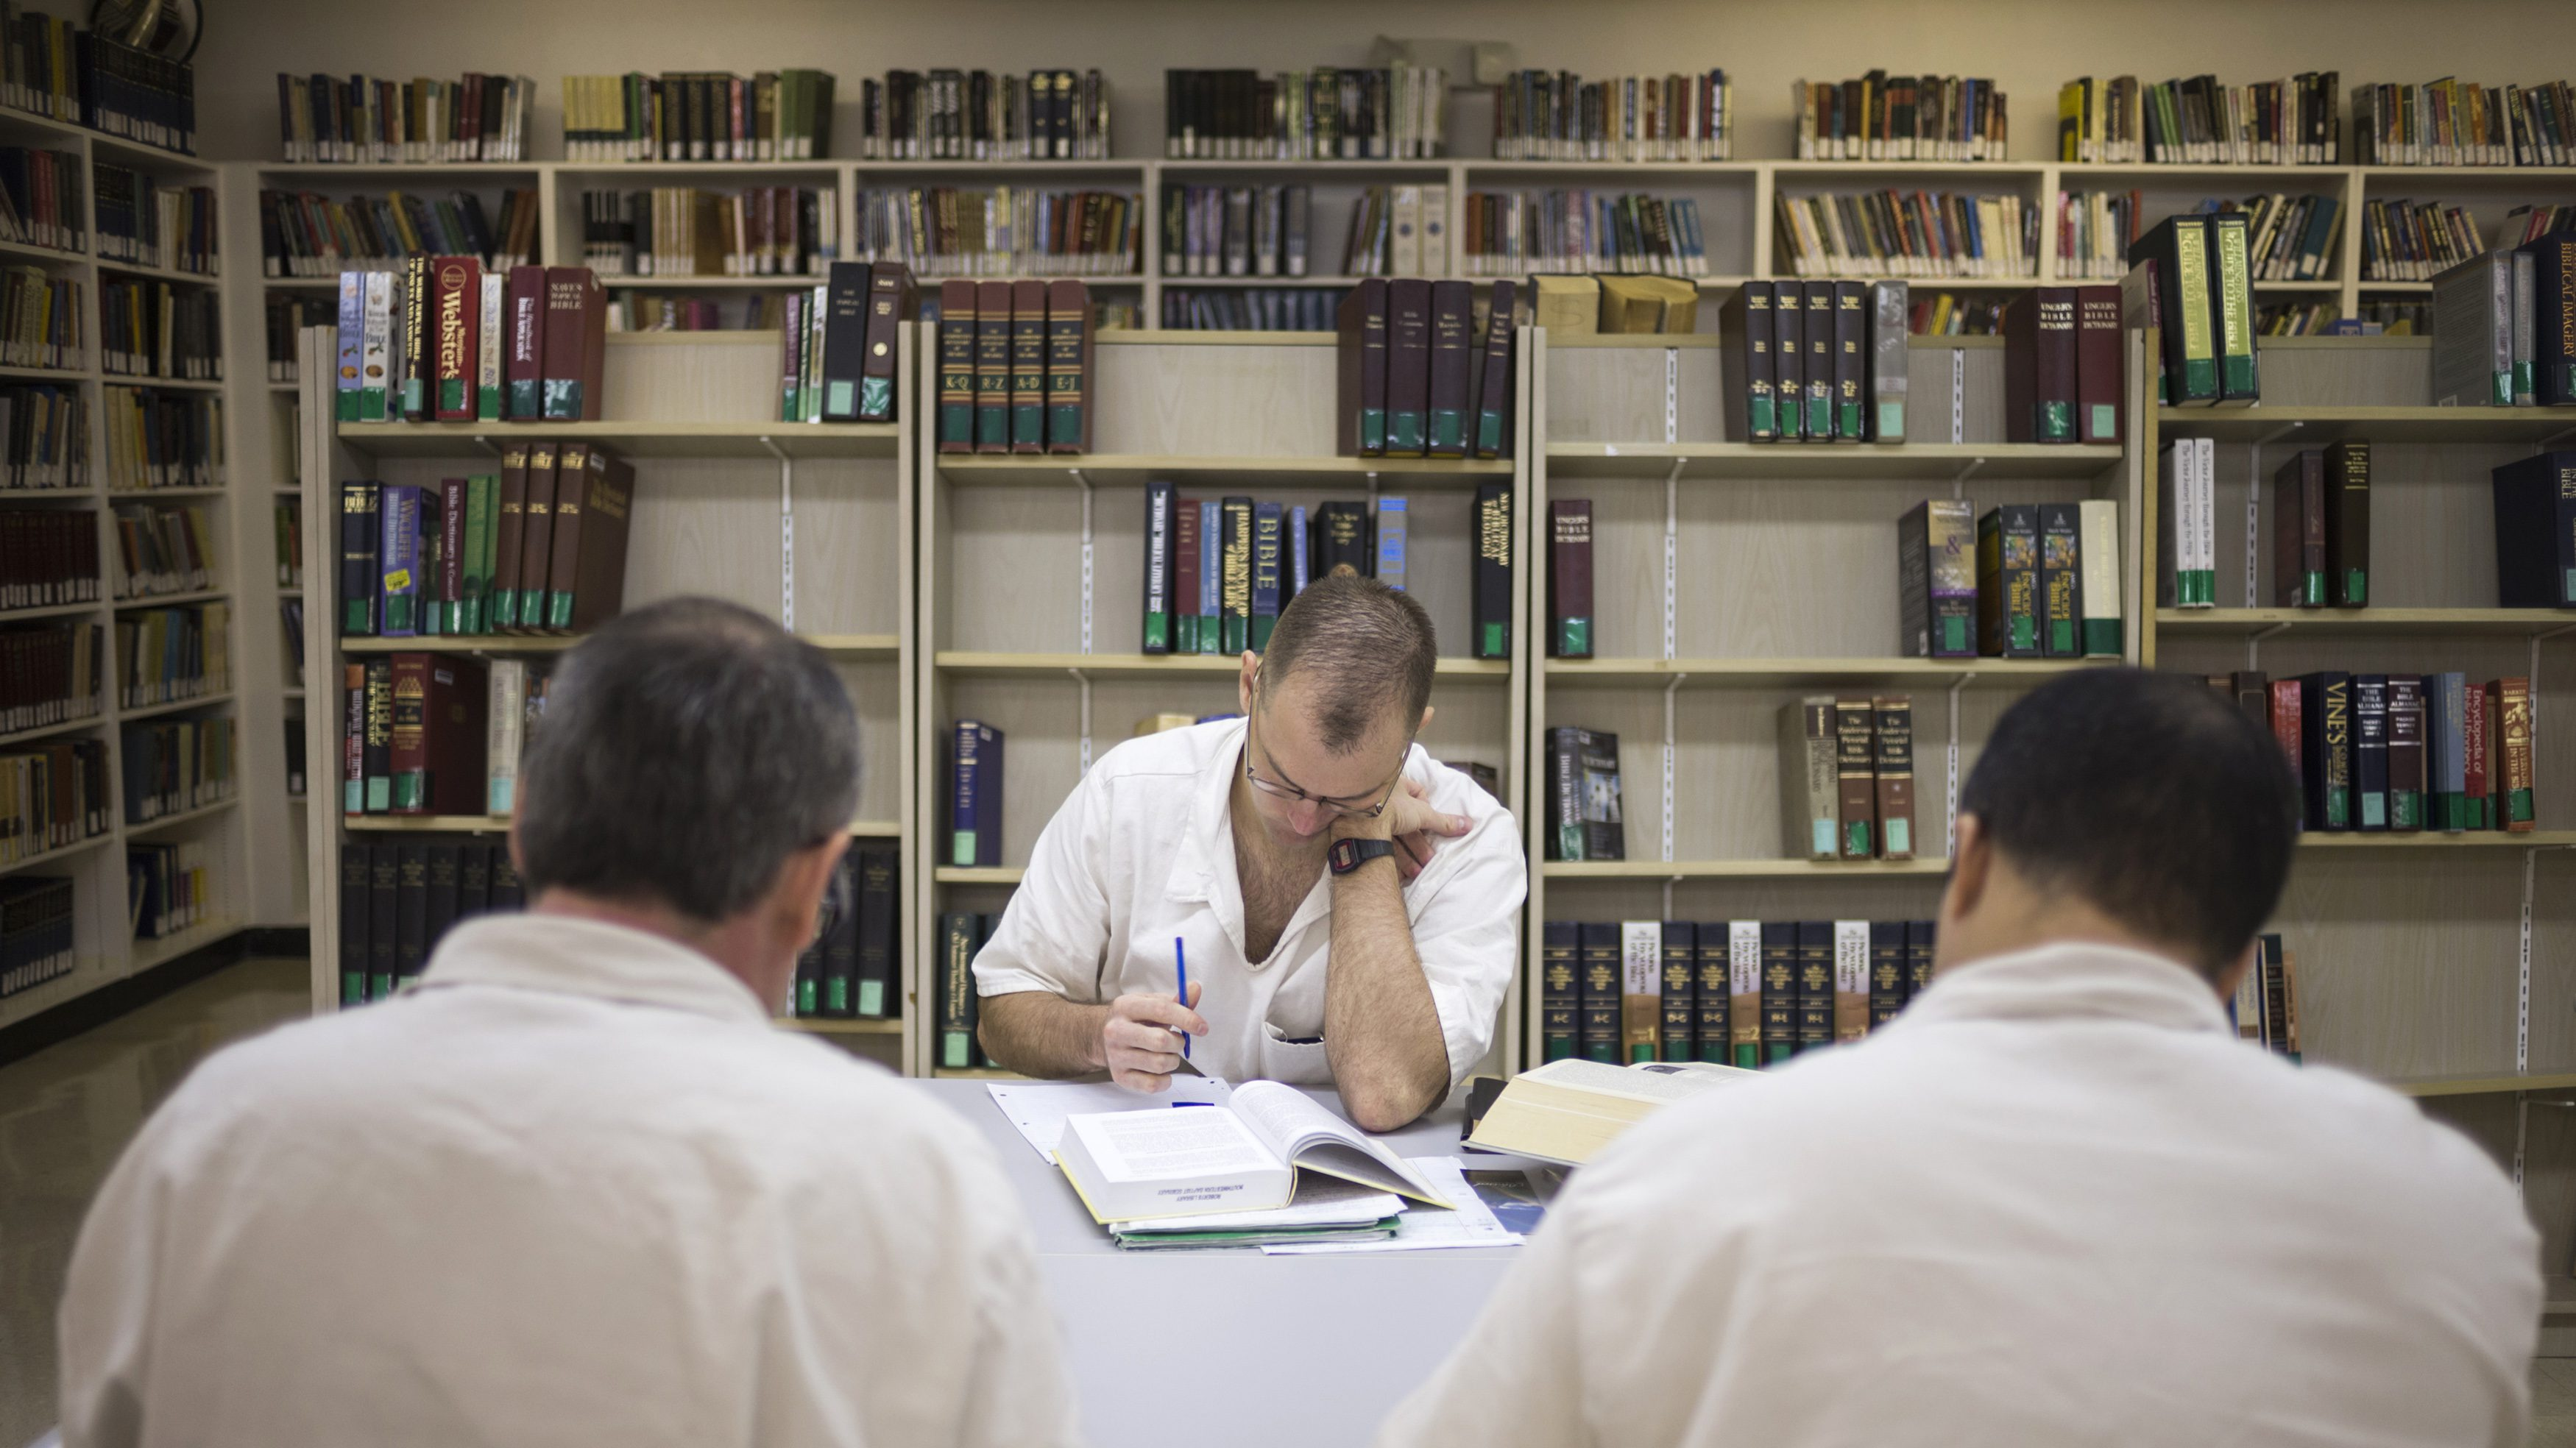 Offenders read and write papers inside the Southwestern Baptist Theological Seminary library located in the Darrington Unit of the Texas Department of Criminal Justice men's prison in Rosharon, Texas August 12, 2014. The Southwestern Baptist Theological Seminary, a private college based in Fort Worth, Texas, began its bachelor of science in biblical studies program at Darrington, south of Houston, about three years ago. To be accepted, an offender has to be at least 10 years from the possibility of parole, have a good behavior record and the appropriate academic credentials to enroll in a college course. The program, which is largely paid for by charitable contributions from the Heart of Texas Foundation, has more than 150 prisoners enrolled and plans to send its graduates as field ministers to other units who want the bible college alumni for peer counseling and spiritual guidance. The first degrees are expected to be conferred next year. Picture taken August 12, 2014. To match Feature USA-TEXAS/PRISON      REUTERS/Adrees Latif (UNITED STATES - Tags: CRIME LAW EDUCATION SOCIETY RELIGION) - GM1EA8G01OP01